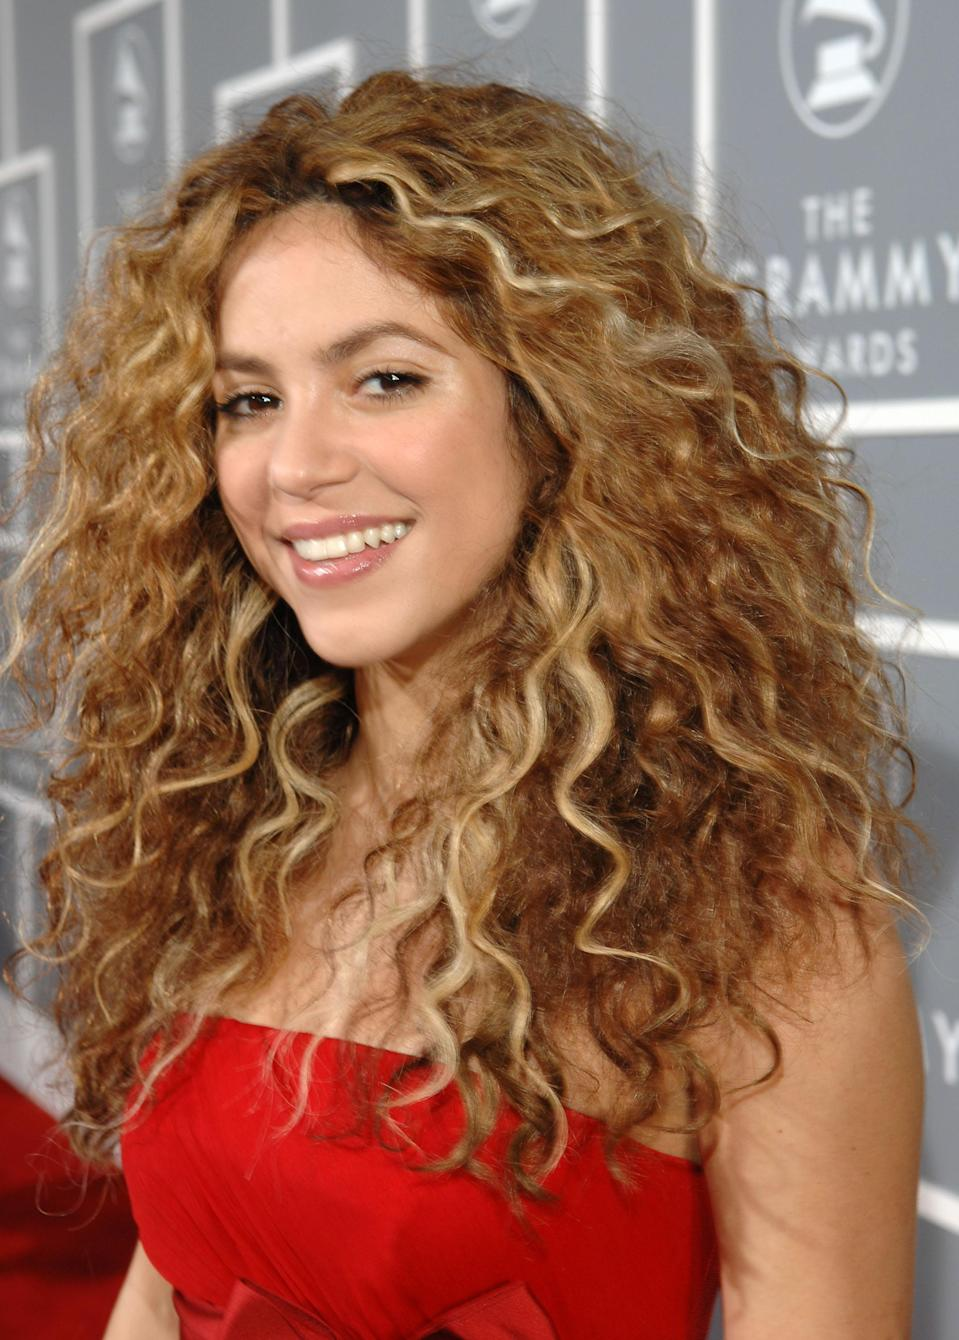 "<p>You may not remember when <a href=""https://www.yahoo.com/lifestyle/tagged/shakira"" data-ylk=""slk:Shakira"" class=""link rapid-noclick-resp"">Shakira</a> first stepped on the world's stage with vibrant raspberry strands, but when the Colombian rocker crossed over into the states, she made the dramatic switch to the blonde we know and love today. Hair color aside, the hip-shimmying songstress is known for embracing her <a href=""https://www.yahoo.com/lifestyle/tagged/curly-hair"" data-ylk=""slk:curls"" class=""link rapid-noclick-resp"">curls</a>, whether she's on the red carpet or performing onstage. And if you have natural curls like hers, it's all about having <a href=""https://www.yahoo.com/lifestyle/shakira-reveals-her-secret-her-150717636.html"" data-ylk=""slk:the right products;outcm:mb_qualified_link;_E:mb_qualified_link;ct:story;"" class=""link rapid-noclick-resp yahoo-link"">the right products</a>. (Photo: Getty Images) </p>"